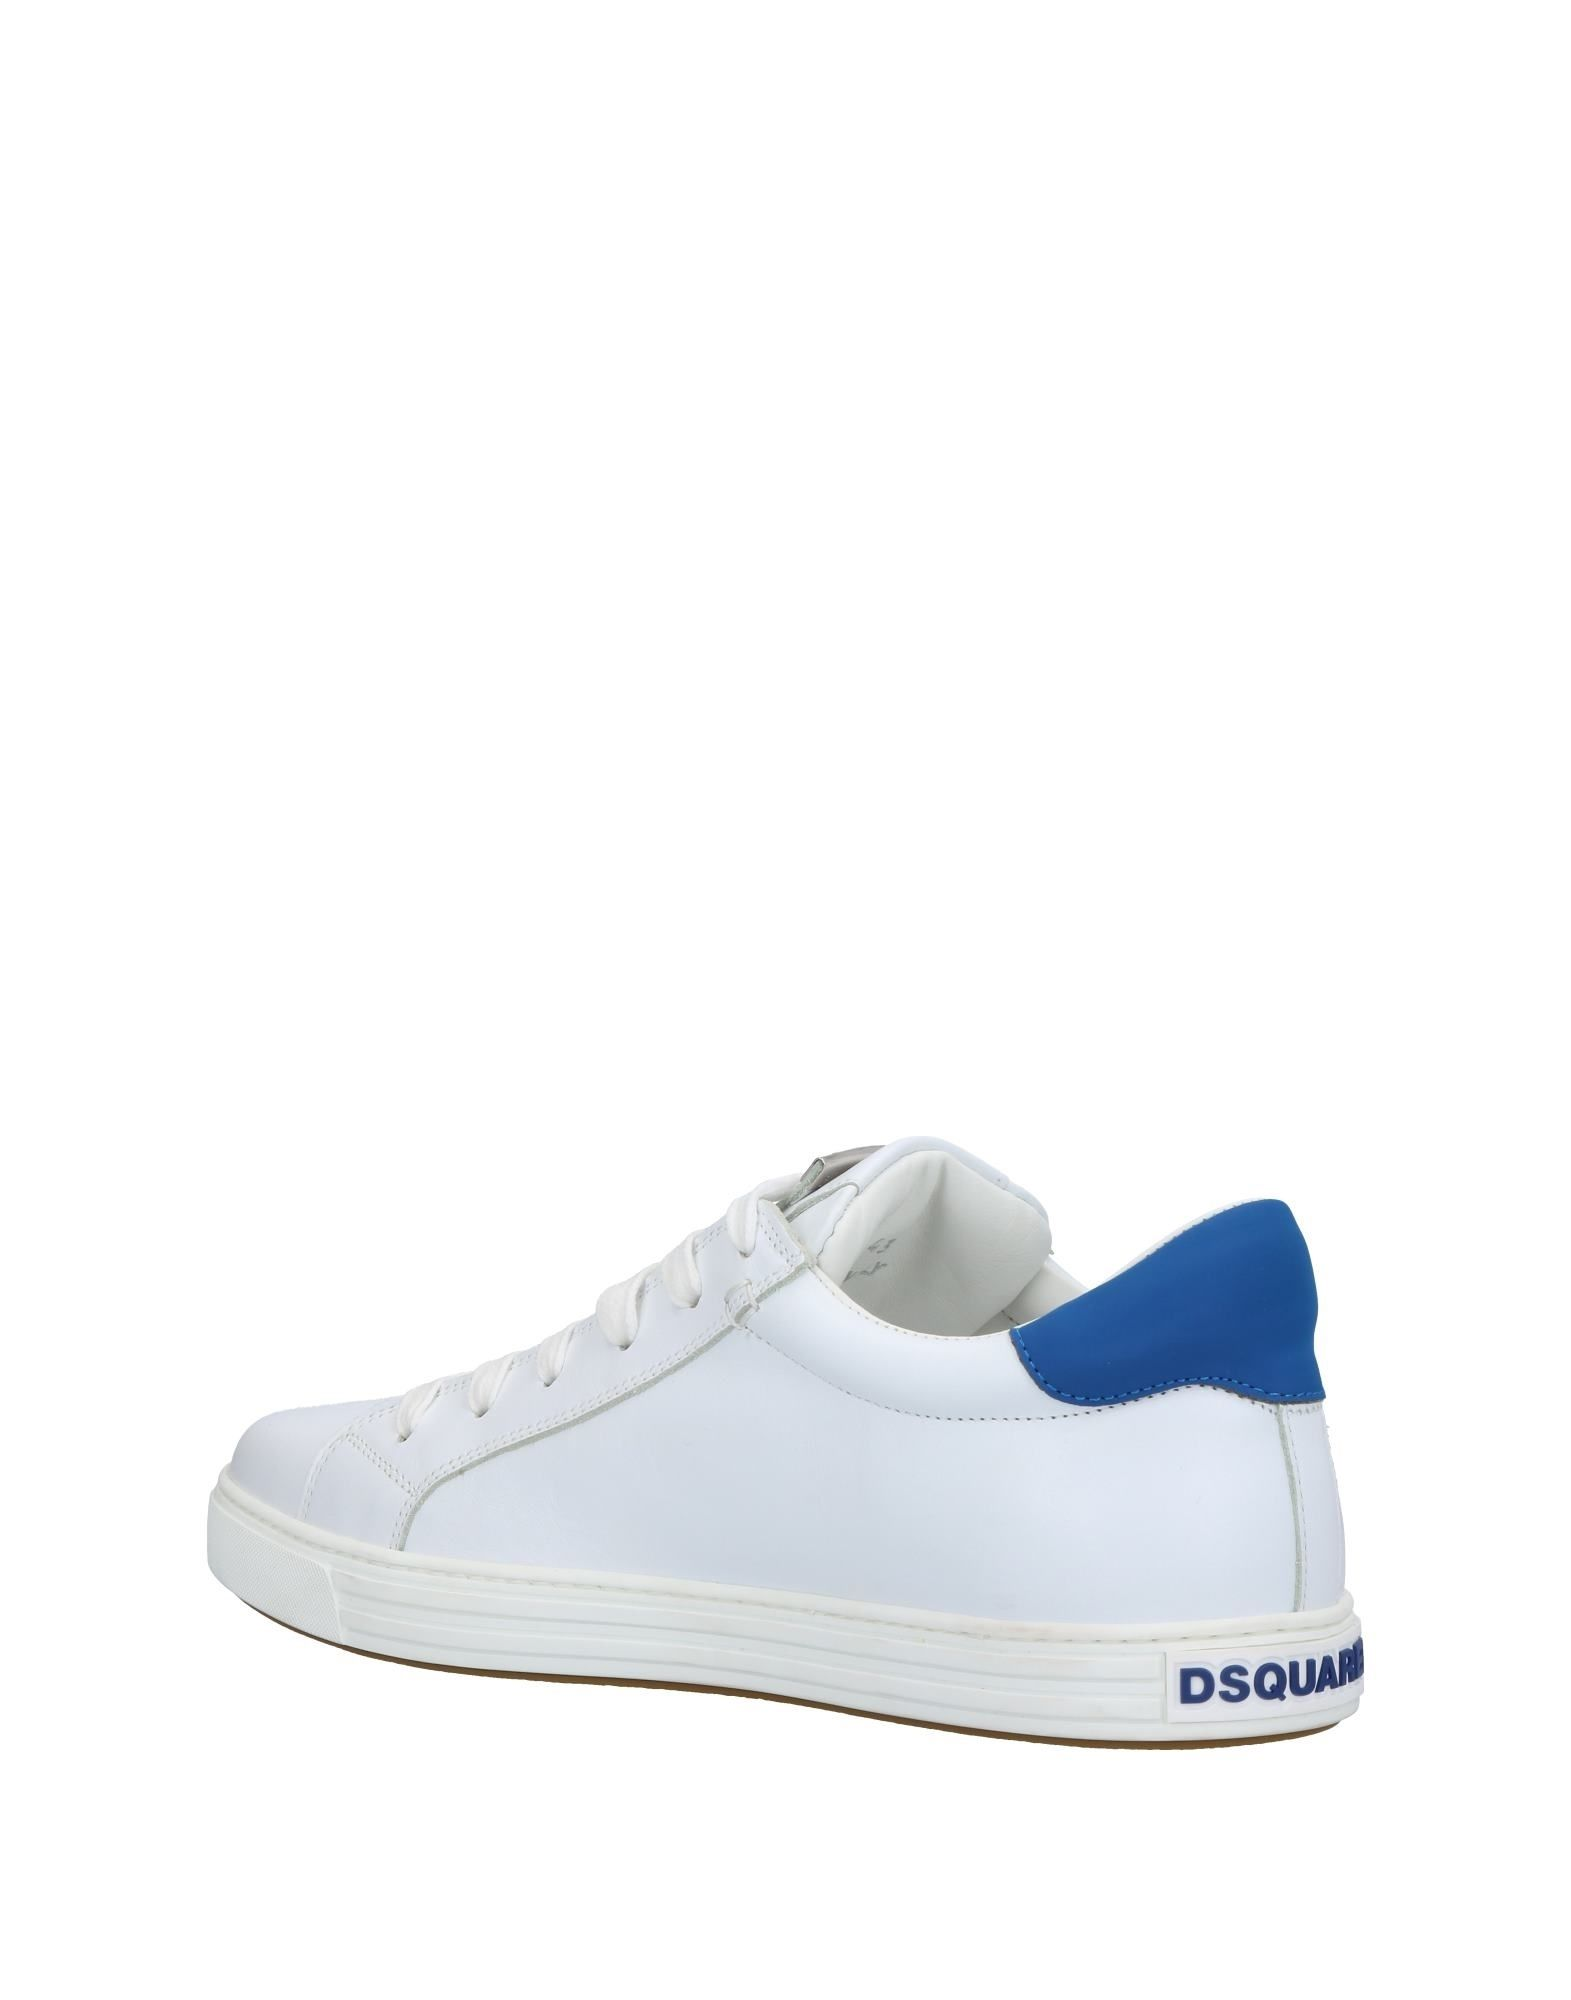 Sneakers Dsquared2 Femme - Sneakers Dsquared2 sur